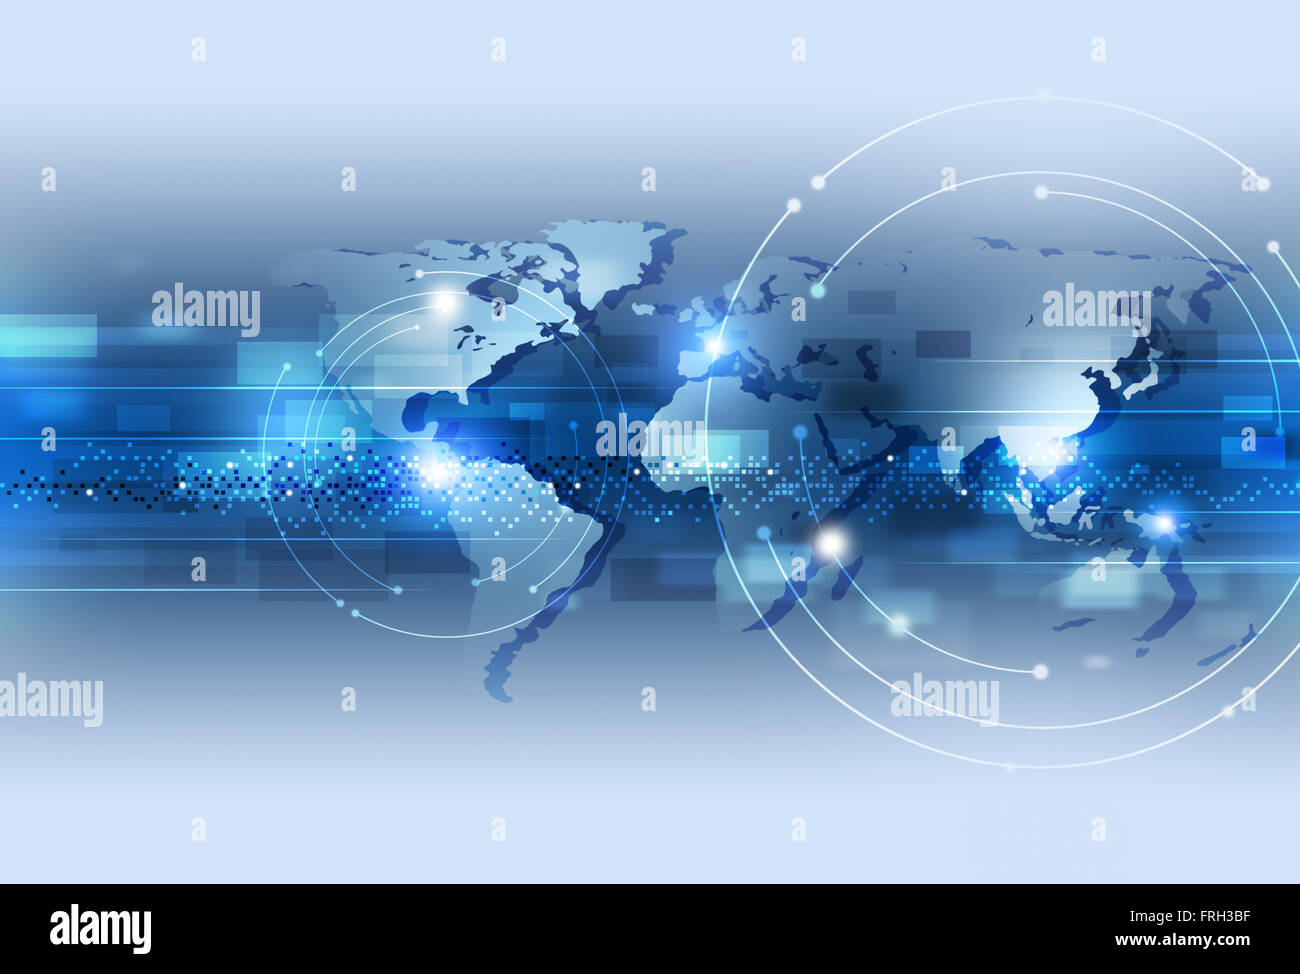 digital world of technology communications and connection blue background - Stock Image